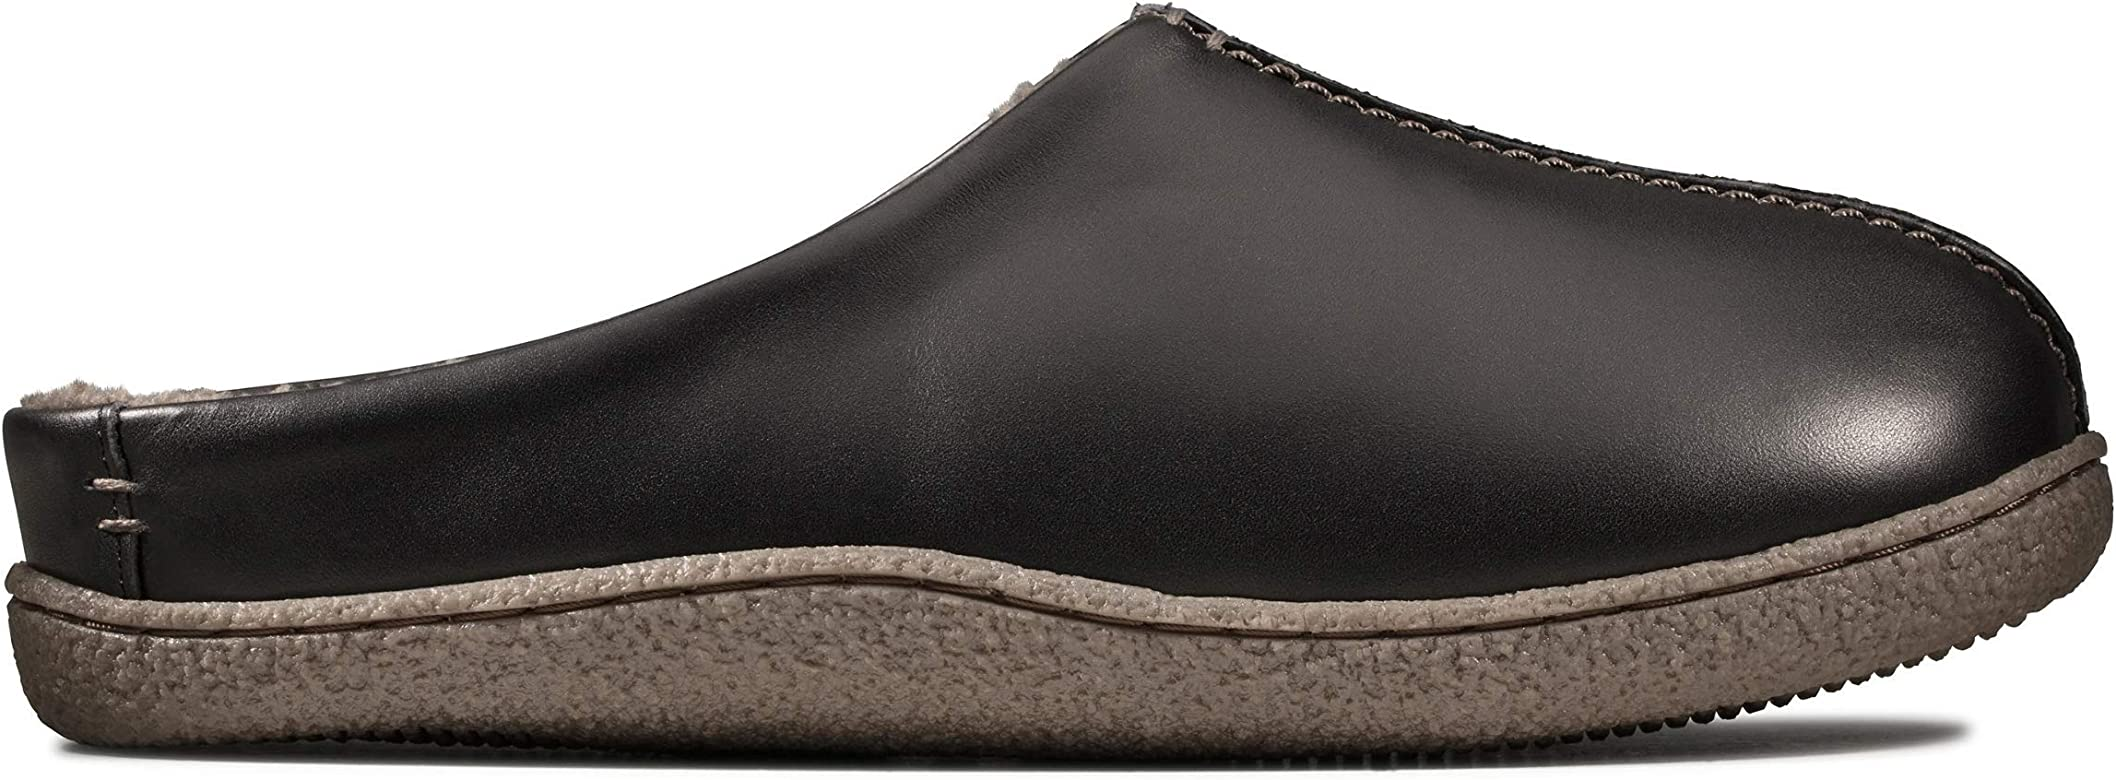 CLARKS Relaxed Style Mens Leather Mule Slipper